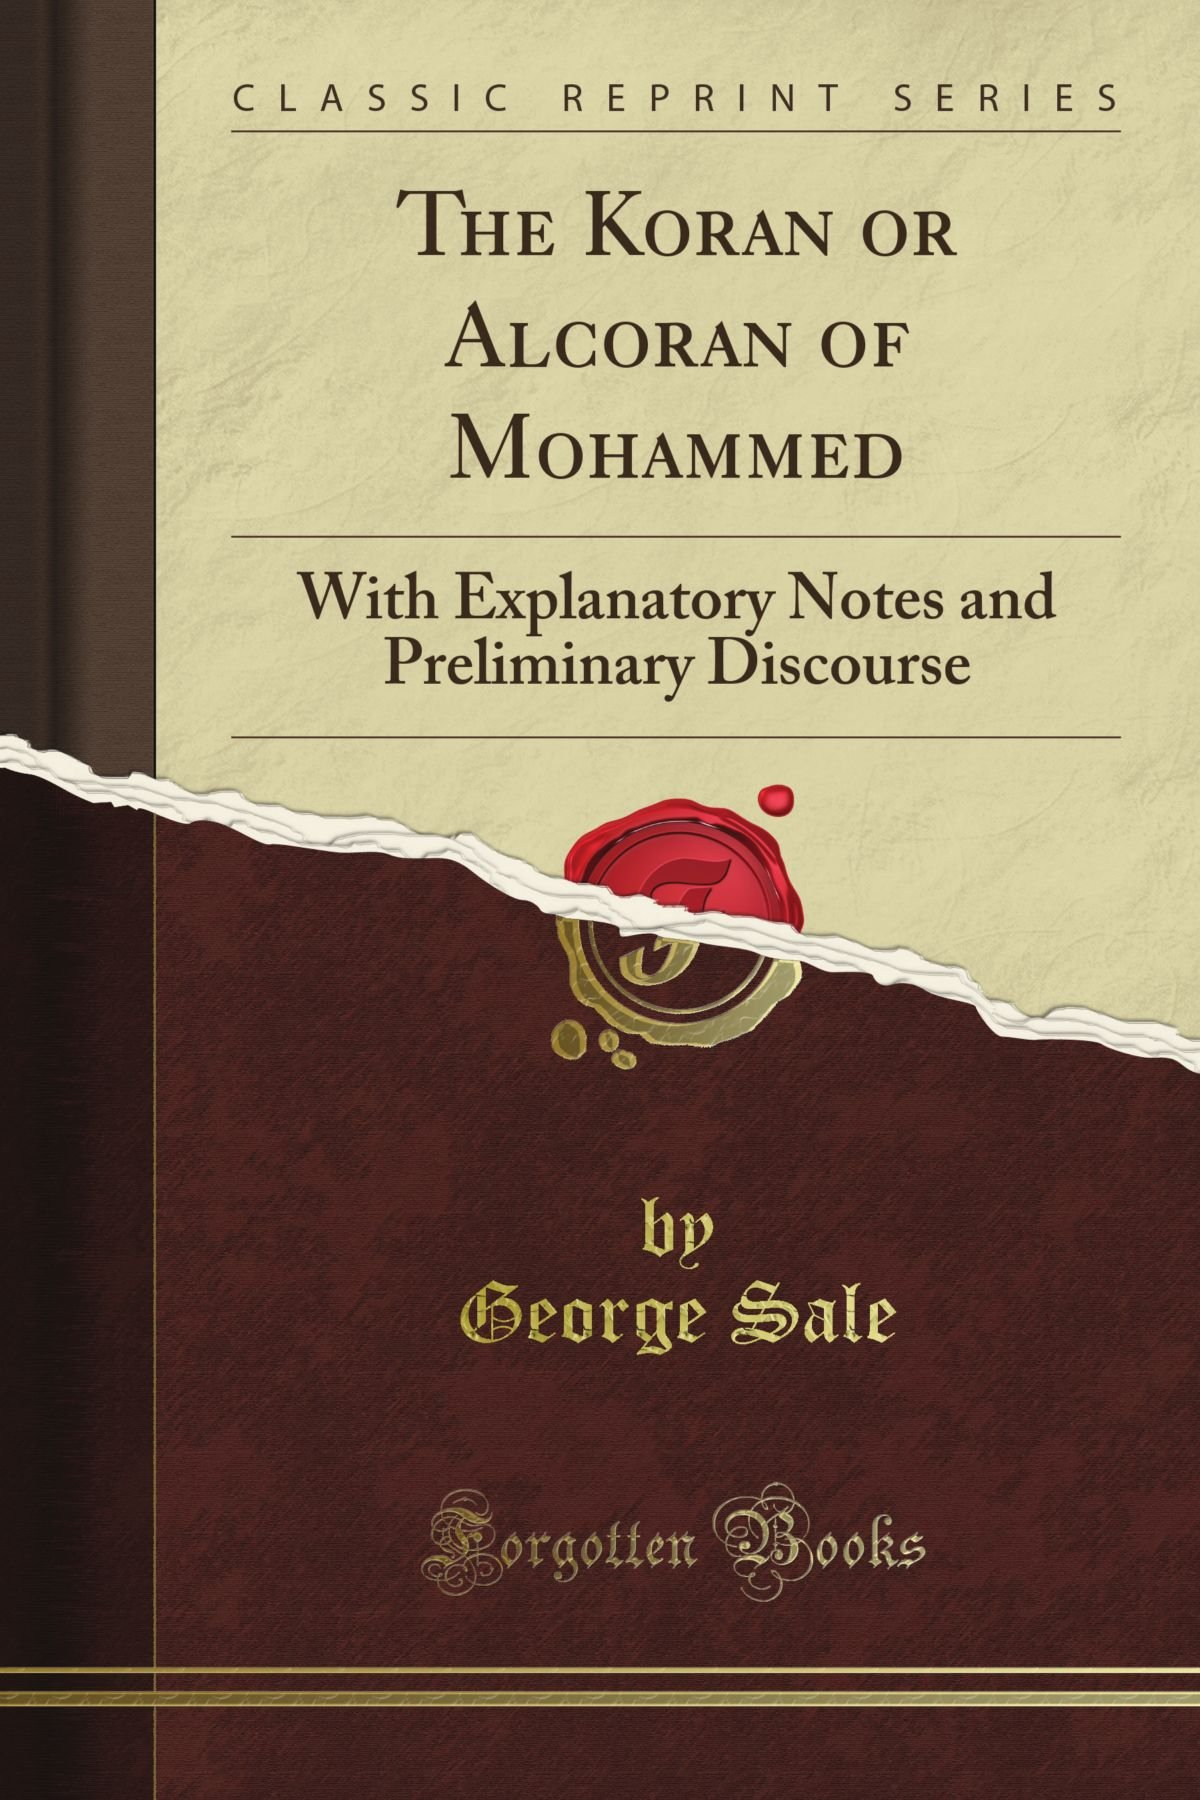 The Koran or Alcoran of Mohammed: With Explanatory Notes and Preliminary Discourse (Classic Reprint)